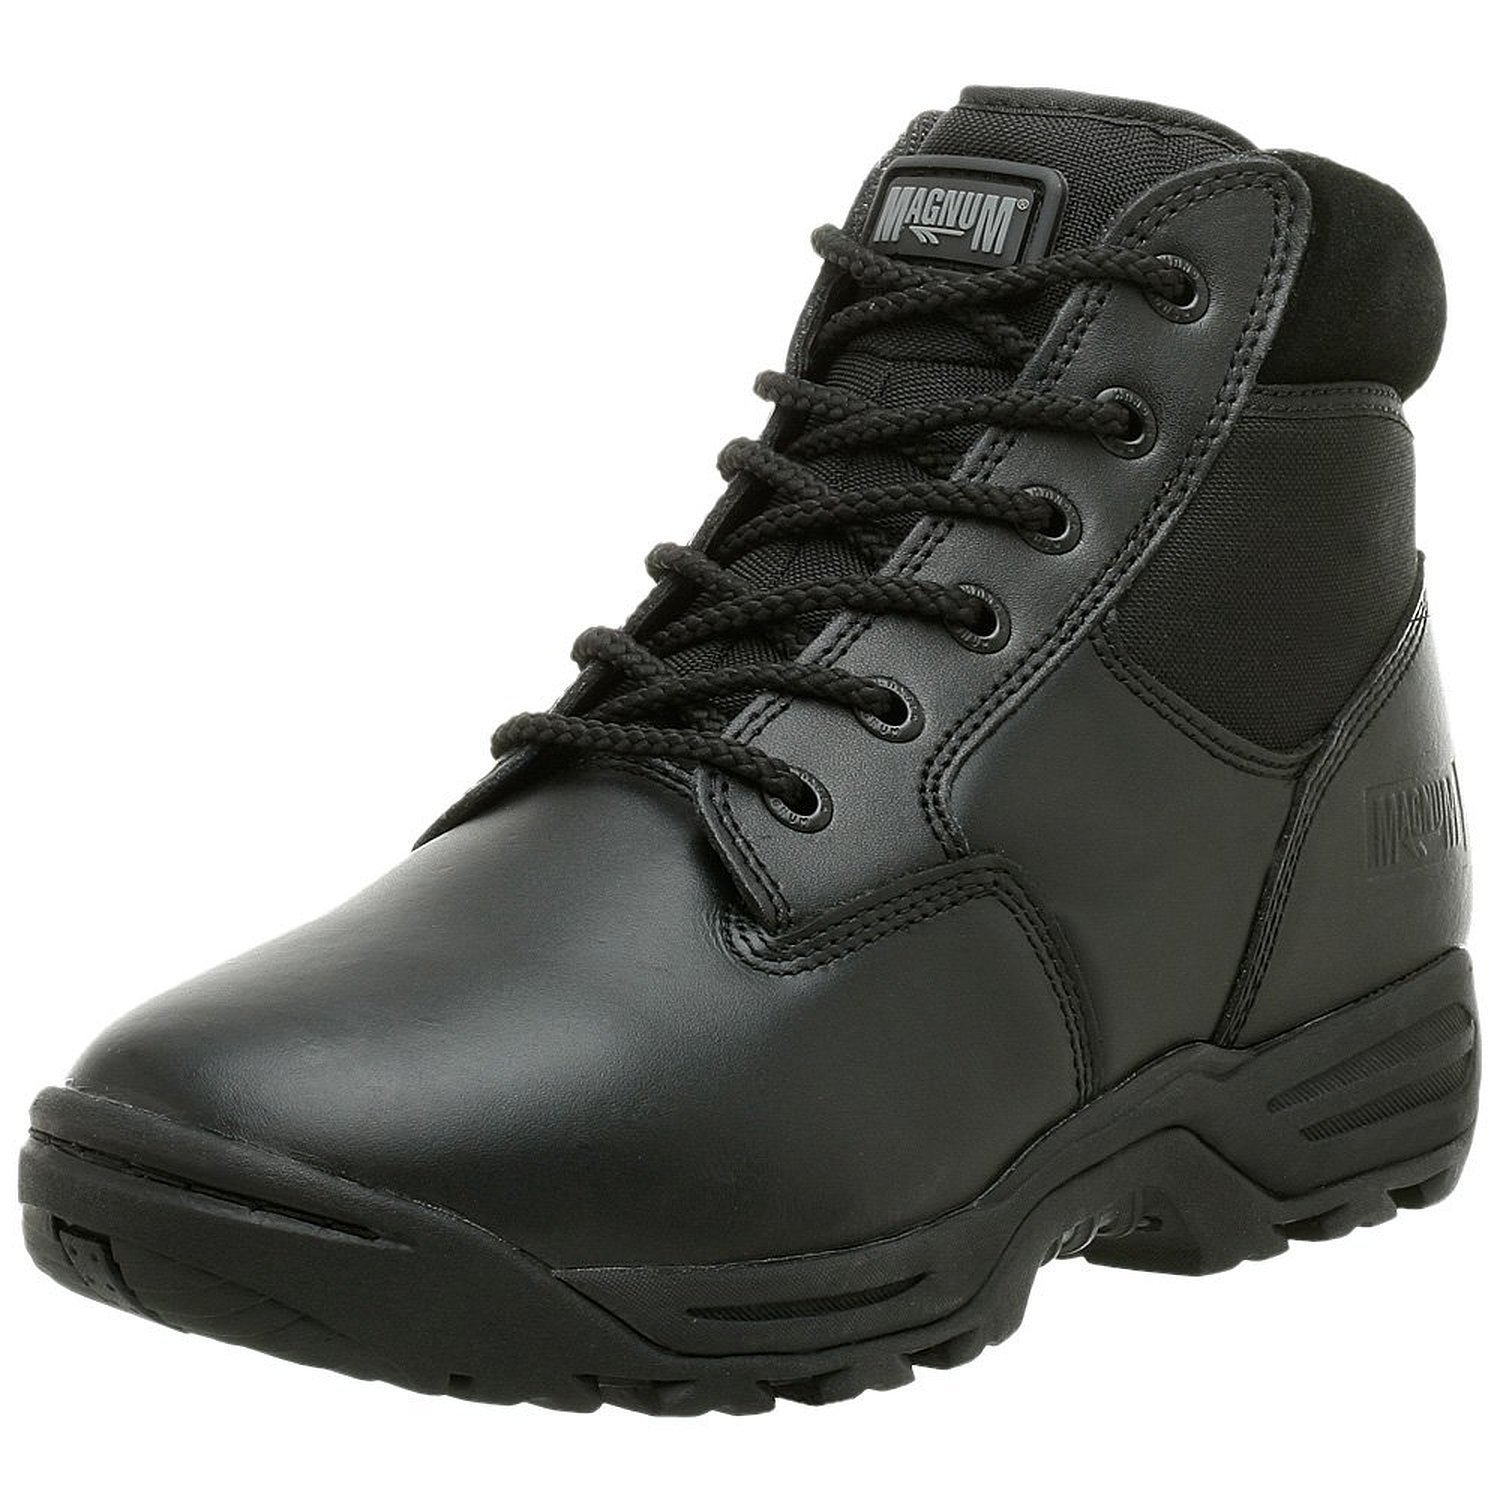 Hi-Tec Magnum Magnum Regular Ankle Boots Unisex-Adult ( 2) Size: 10 UK (44 EU) Free Shipping Professional Discount How Much Outlet For Cheap Clearance Sale Online Wide Range Of Sale Online TfGm7Y9yK